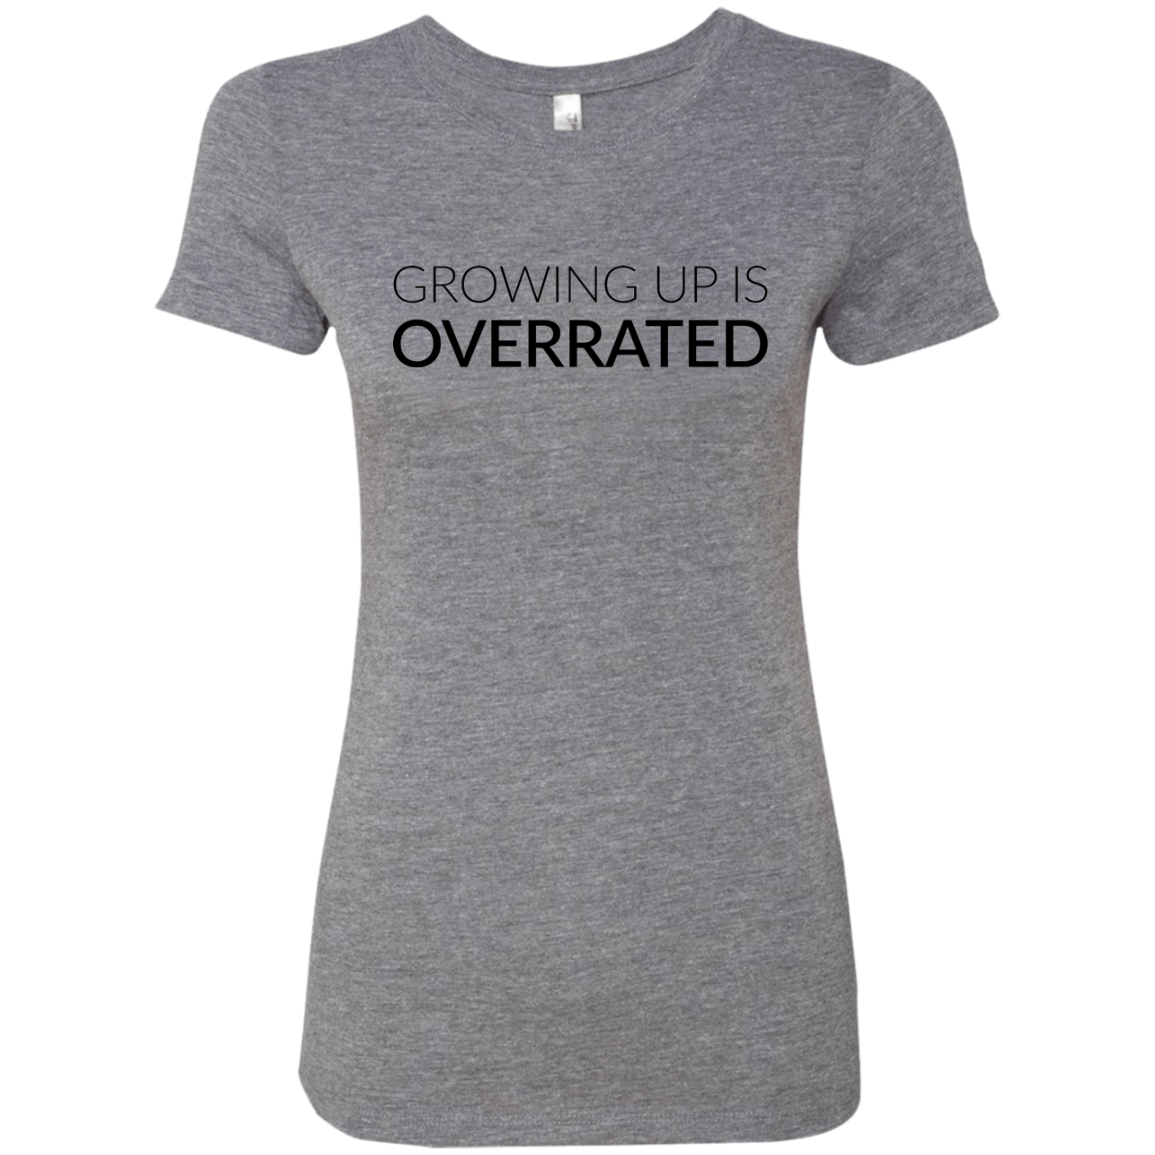 Growing Up is Overrated Women's Classic Tee - Trendy Tees